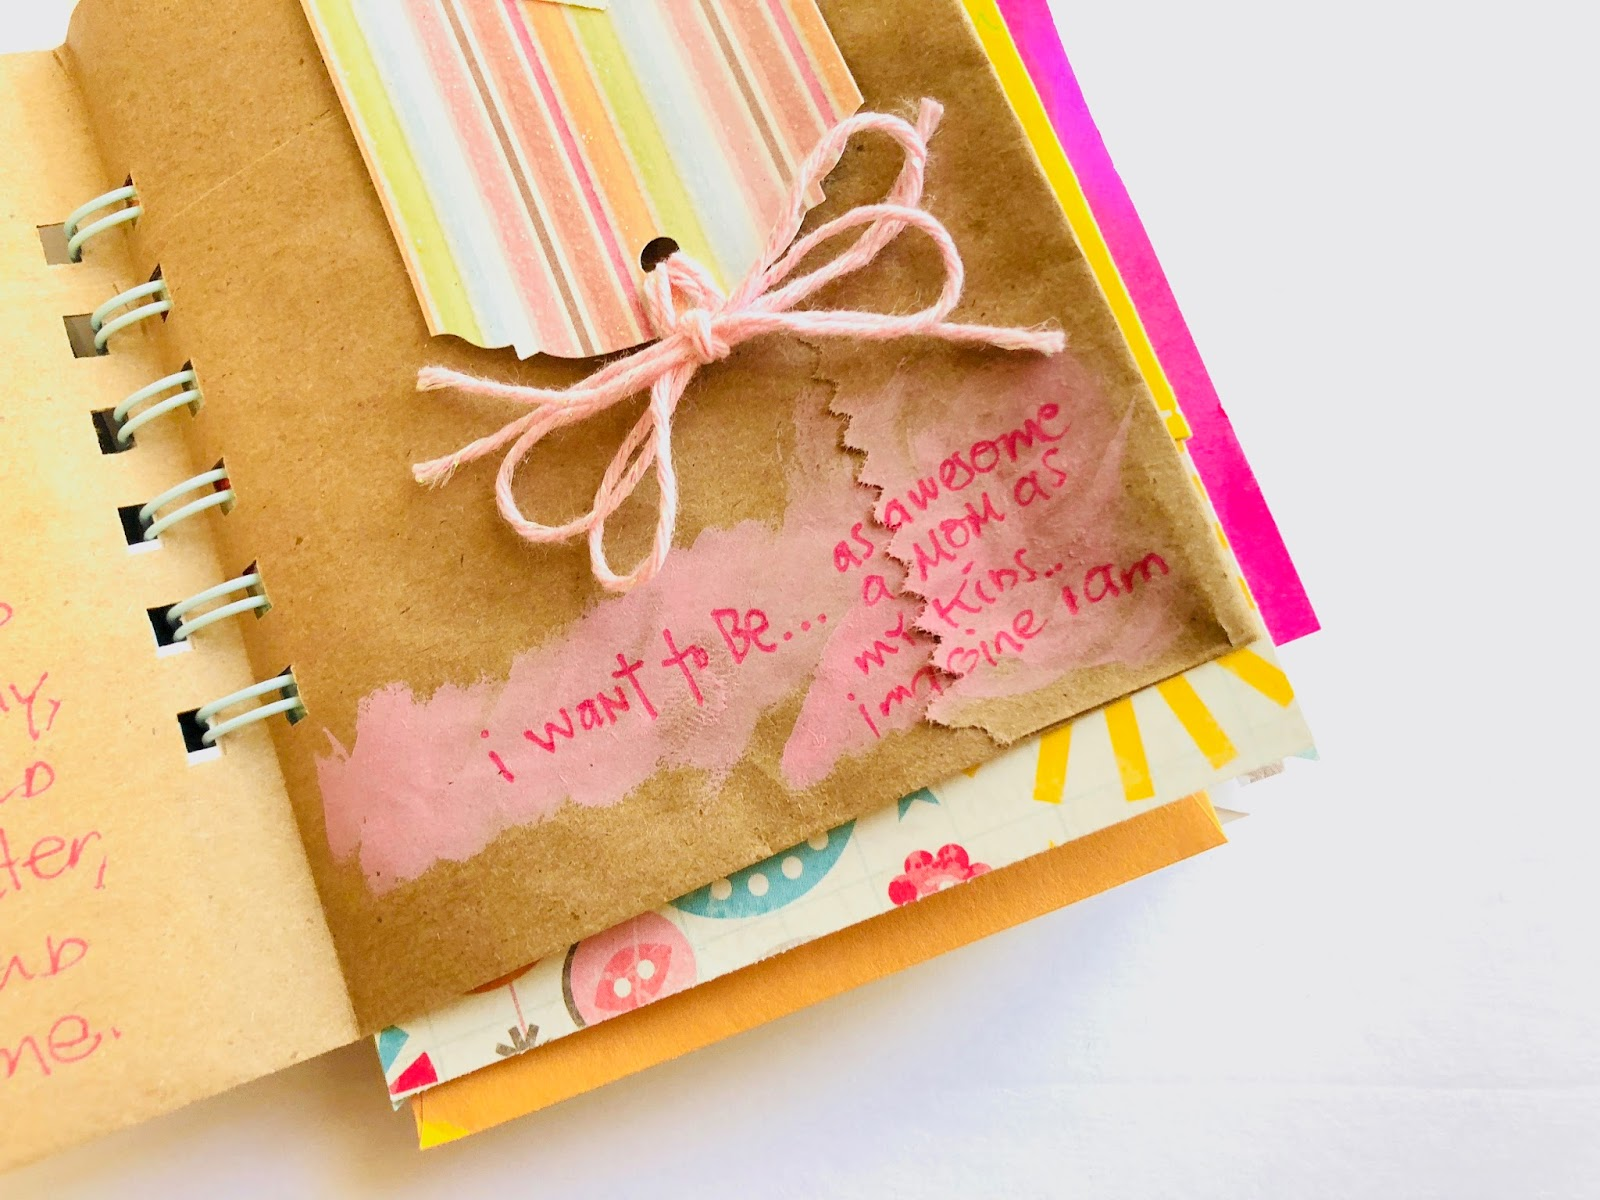 #30lists, #30 Days of Lists #list #lists #listing challenge #I Want to Be #journal #mini book #smashbook